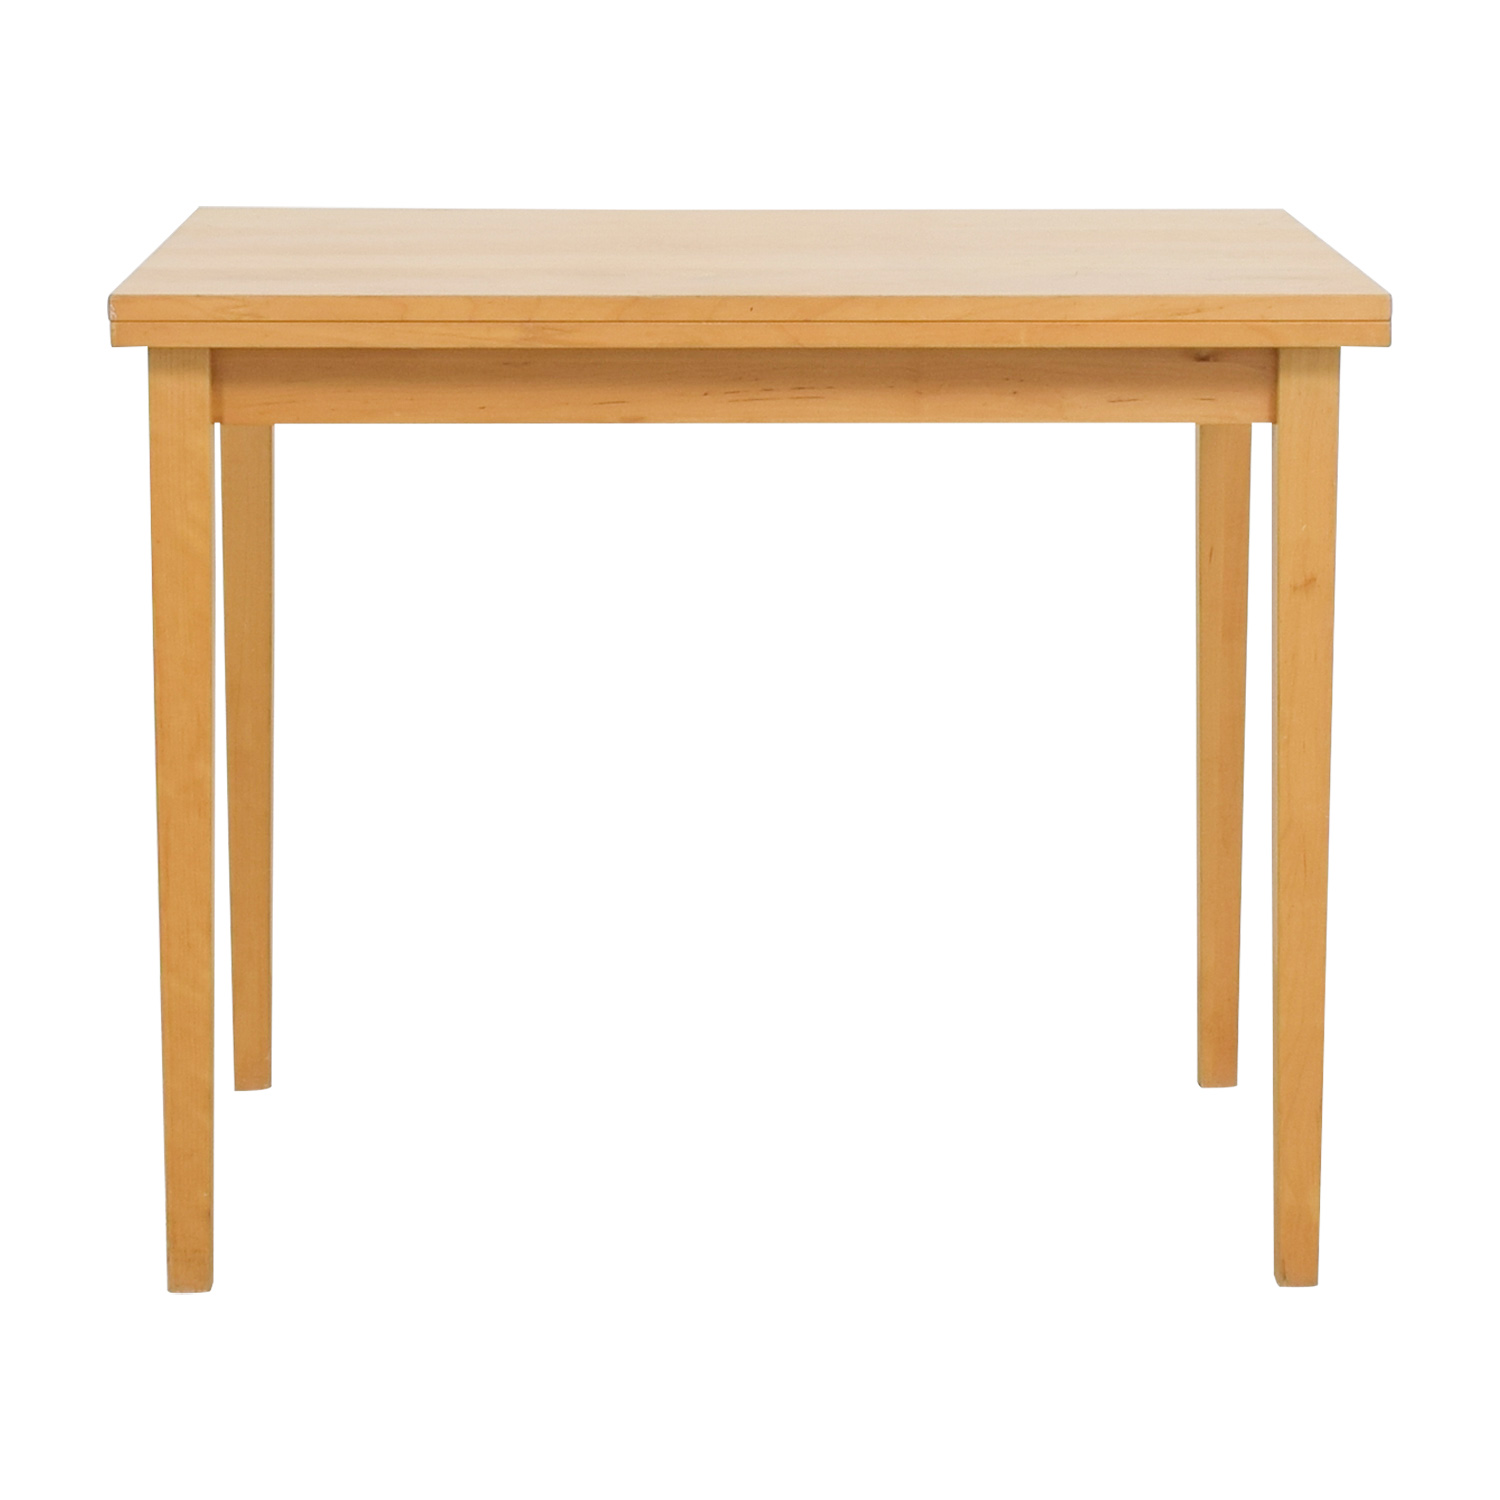 Extendable Table used